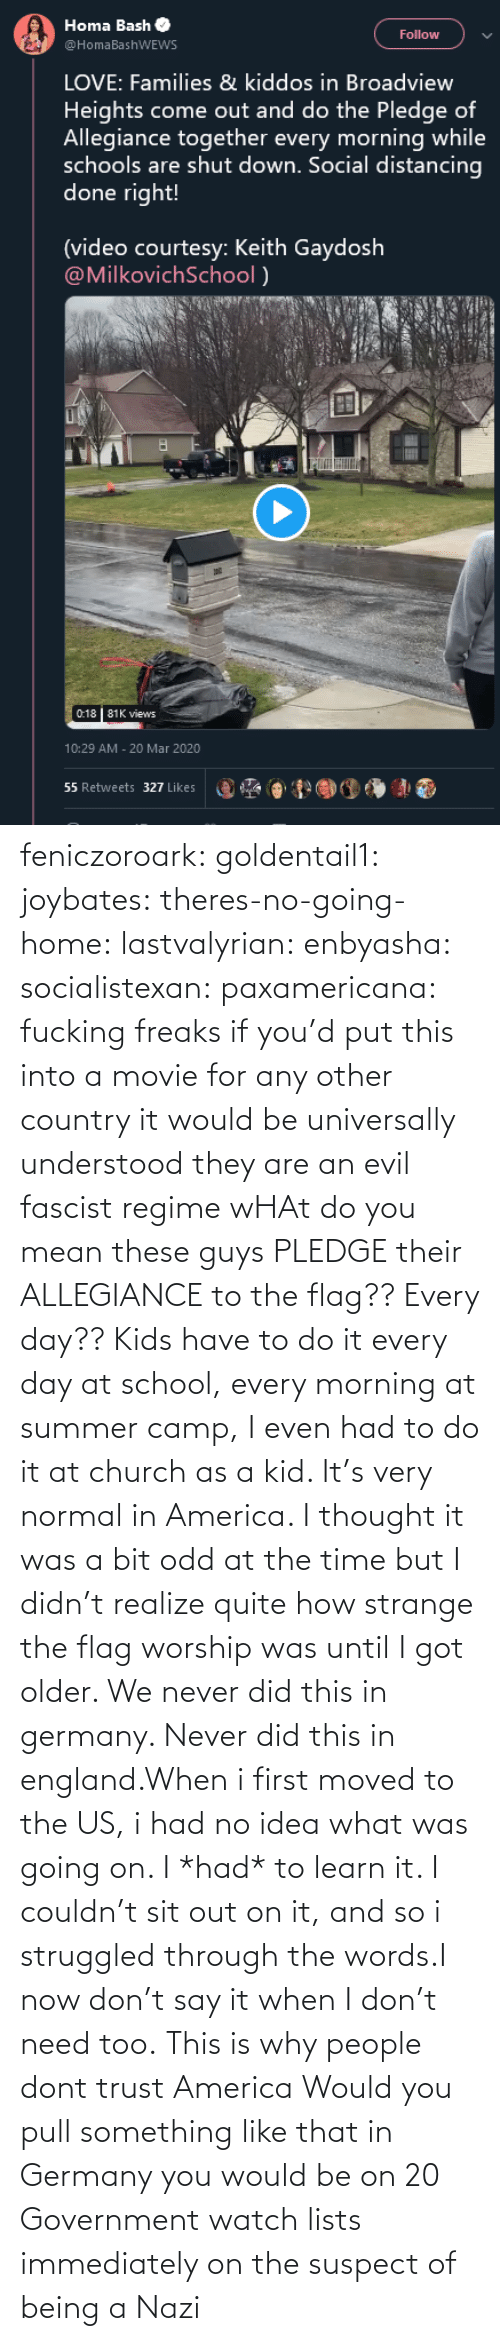 Church: feniczoroark:  goldentail1:  joybates:  theres-no-going-home:  lastvalyrian:  enbyasha:  socialistexan:  paxamericana: fucking freaks       if you'd put this into a movie for any other country it would be universally understood they are an evil fascist regime    wHAt do you mean these guys PLEDGE their ALLEGIANCE to the flag?? Every day??   Kids have to do it every day at school, every morning at summer camp, I even had to do it at church as a kid. It's very normal in America. I thought it was a bit odd at the time but I didn't realize quite how strange the flag worship was until I got older.    We never did this in germany. Never did this in england.When i first moved to the US, i had no idea what was going on. I *had* to learn it. I couldn't sit out on it, and so i struggled through the words.I now don't say it when I don't need too.   This is why people dont trust America    Would you pull something like that in Germany you would be on 20 Government watch lists immediately on the suspect of being a Nazi